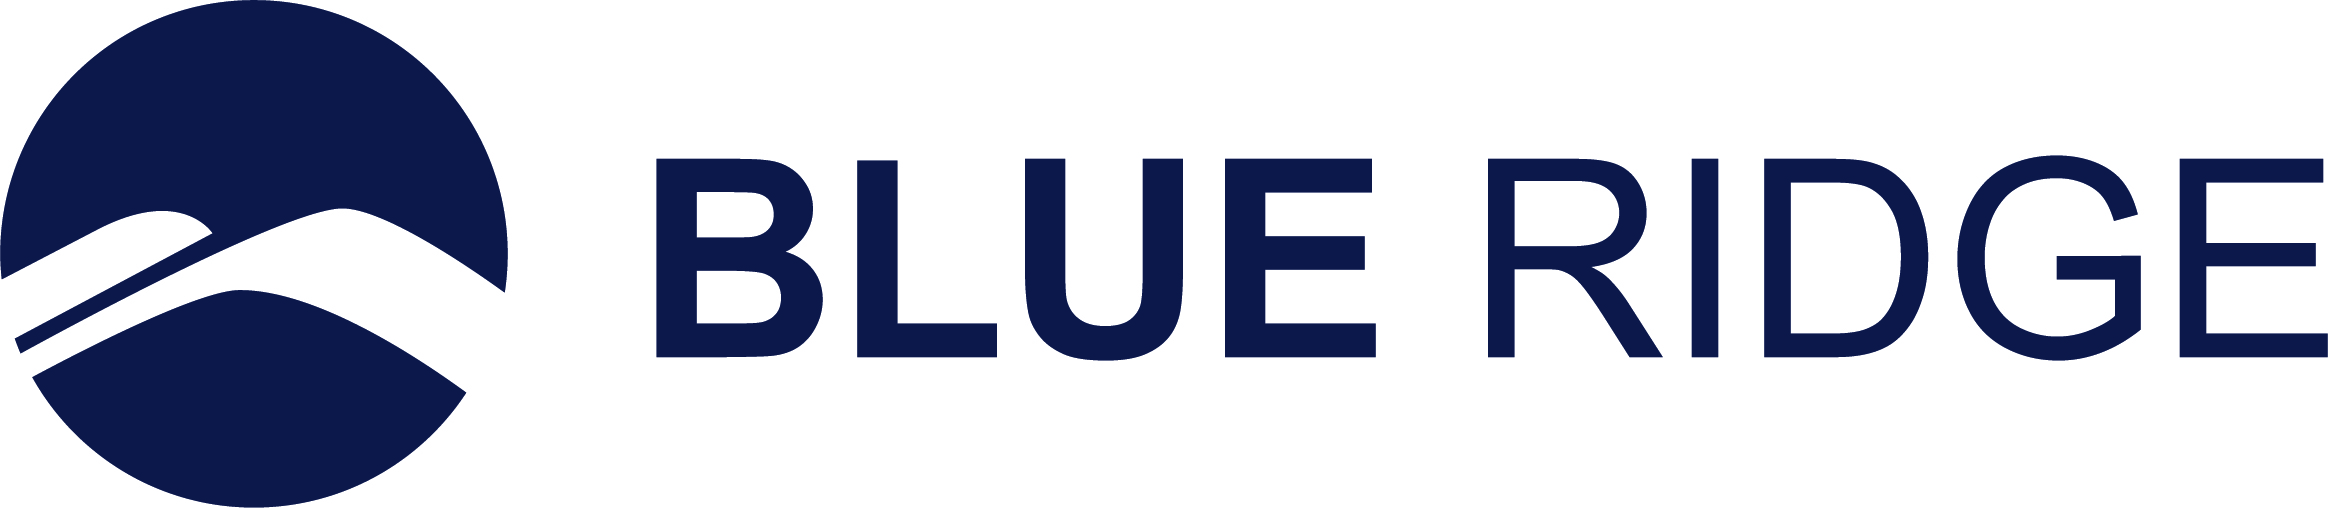 Ed Rusch, Chief Marketing Officer at Blue Ridge Named to Prestigious Forbes Communications Council